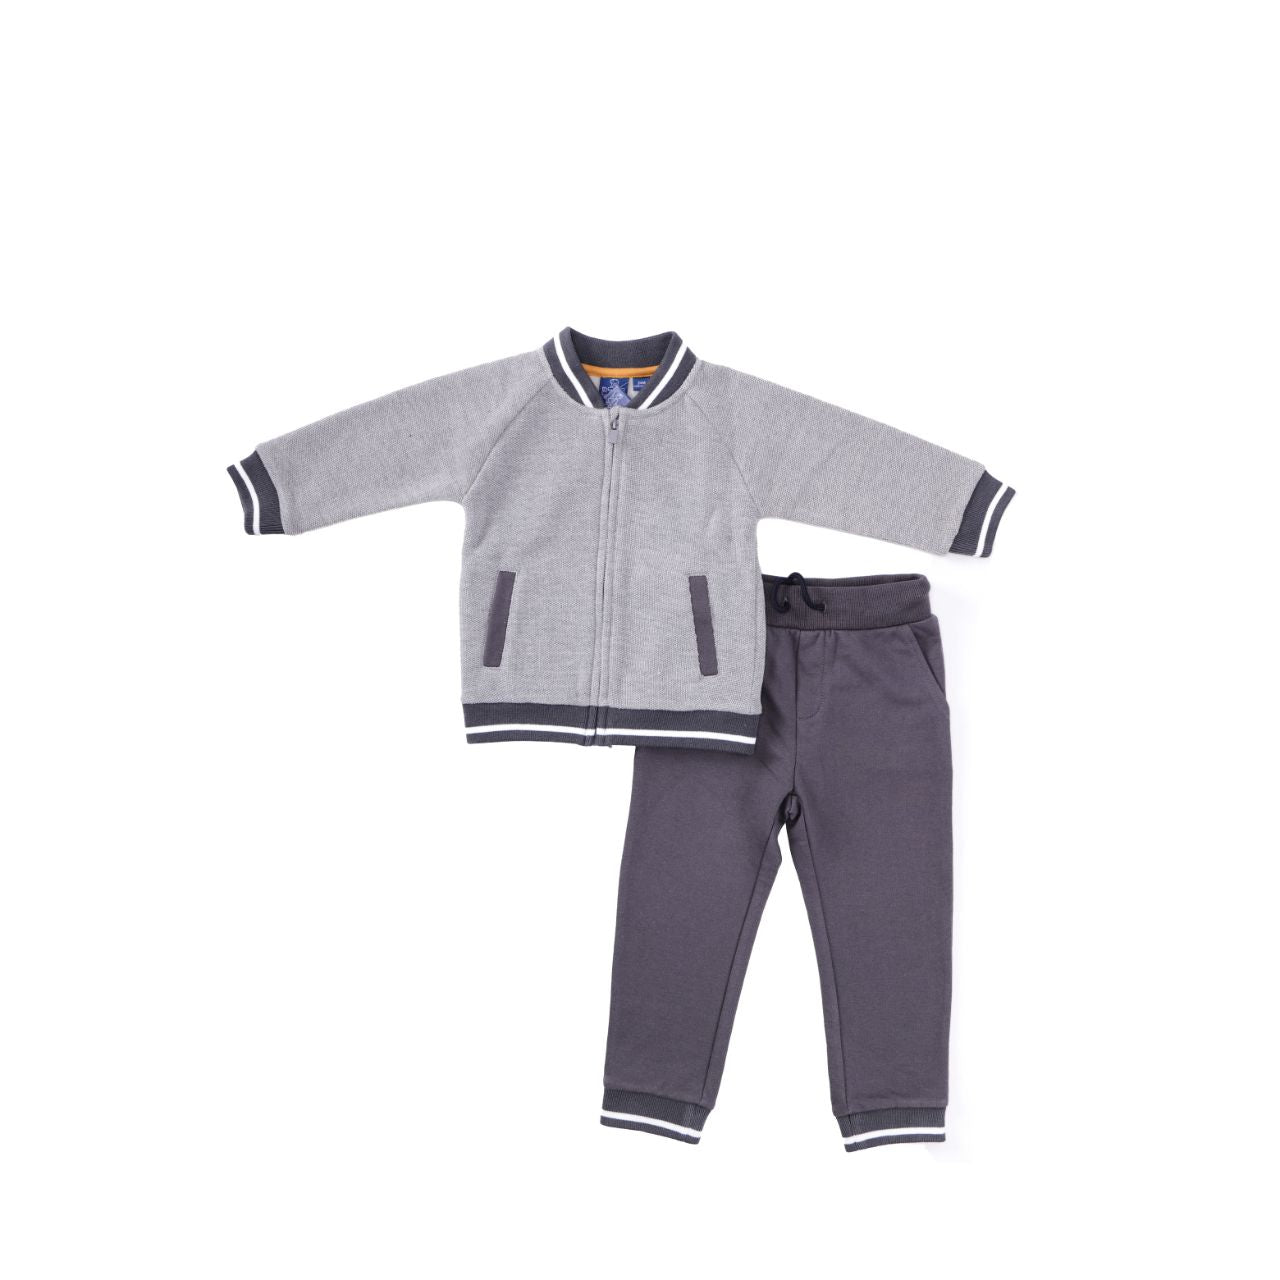 Bradley 2 Piece Baby Set